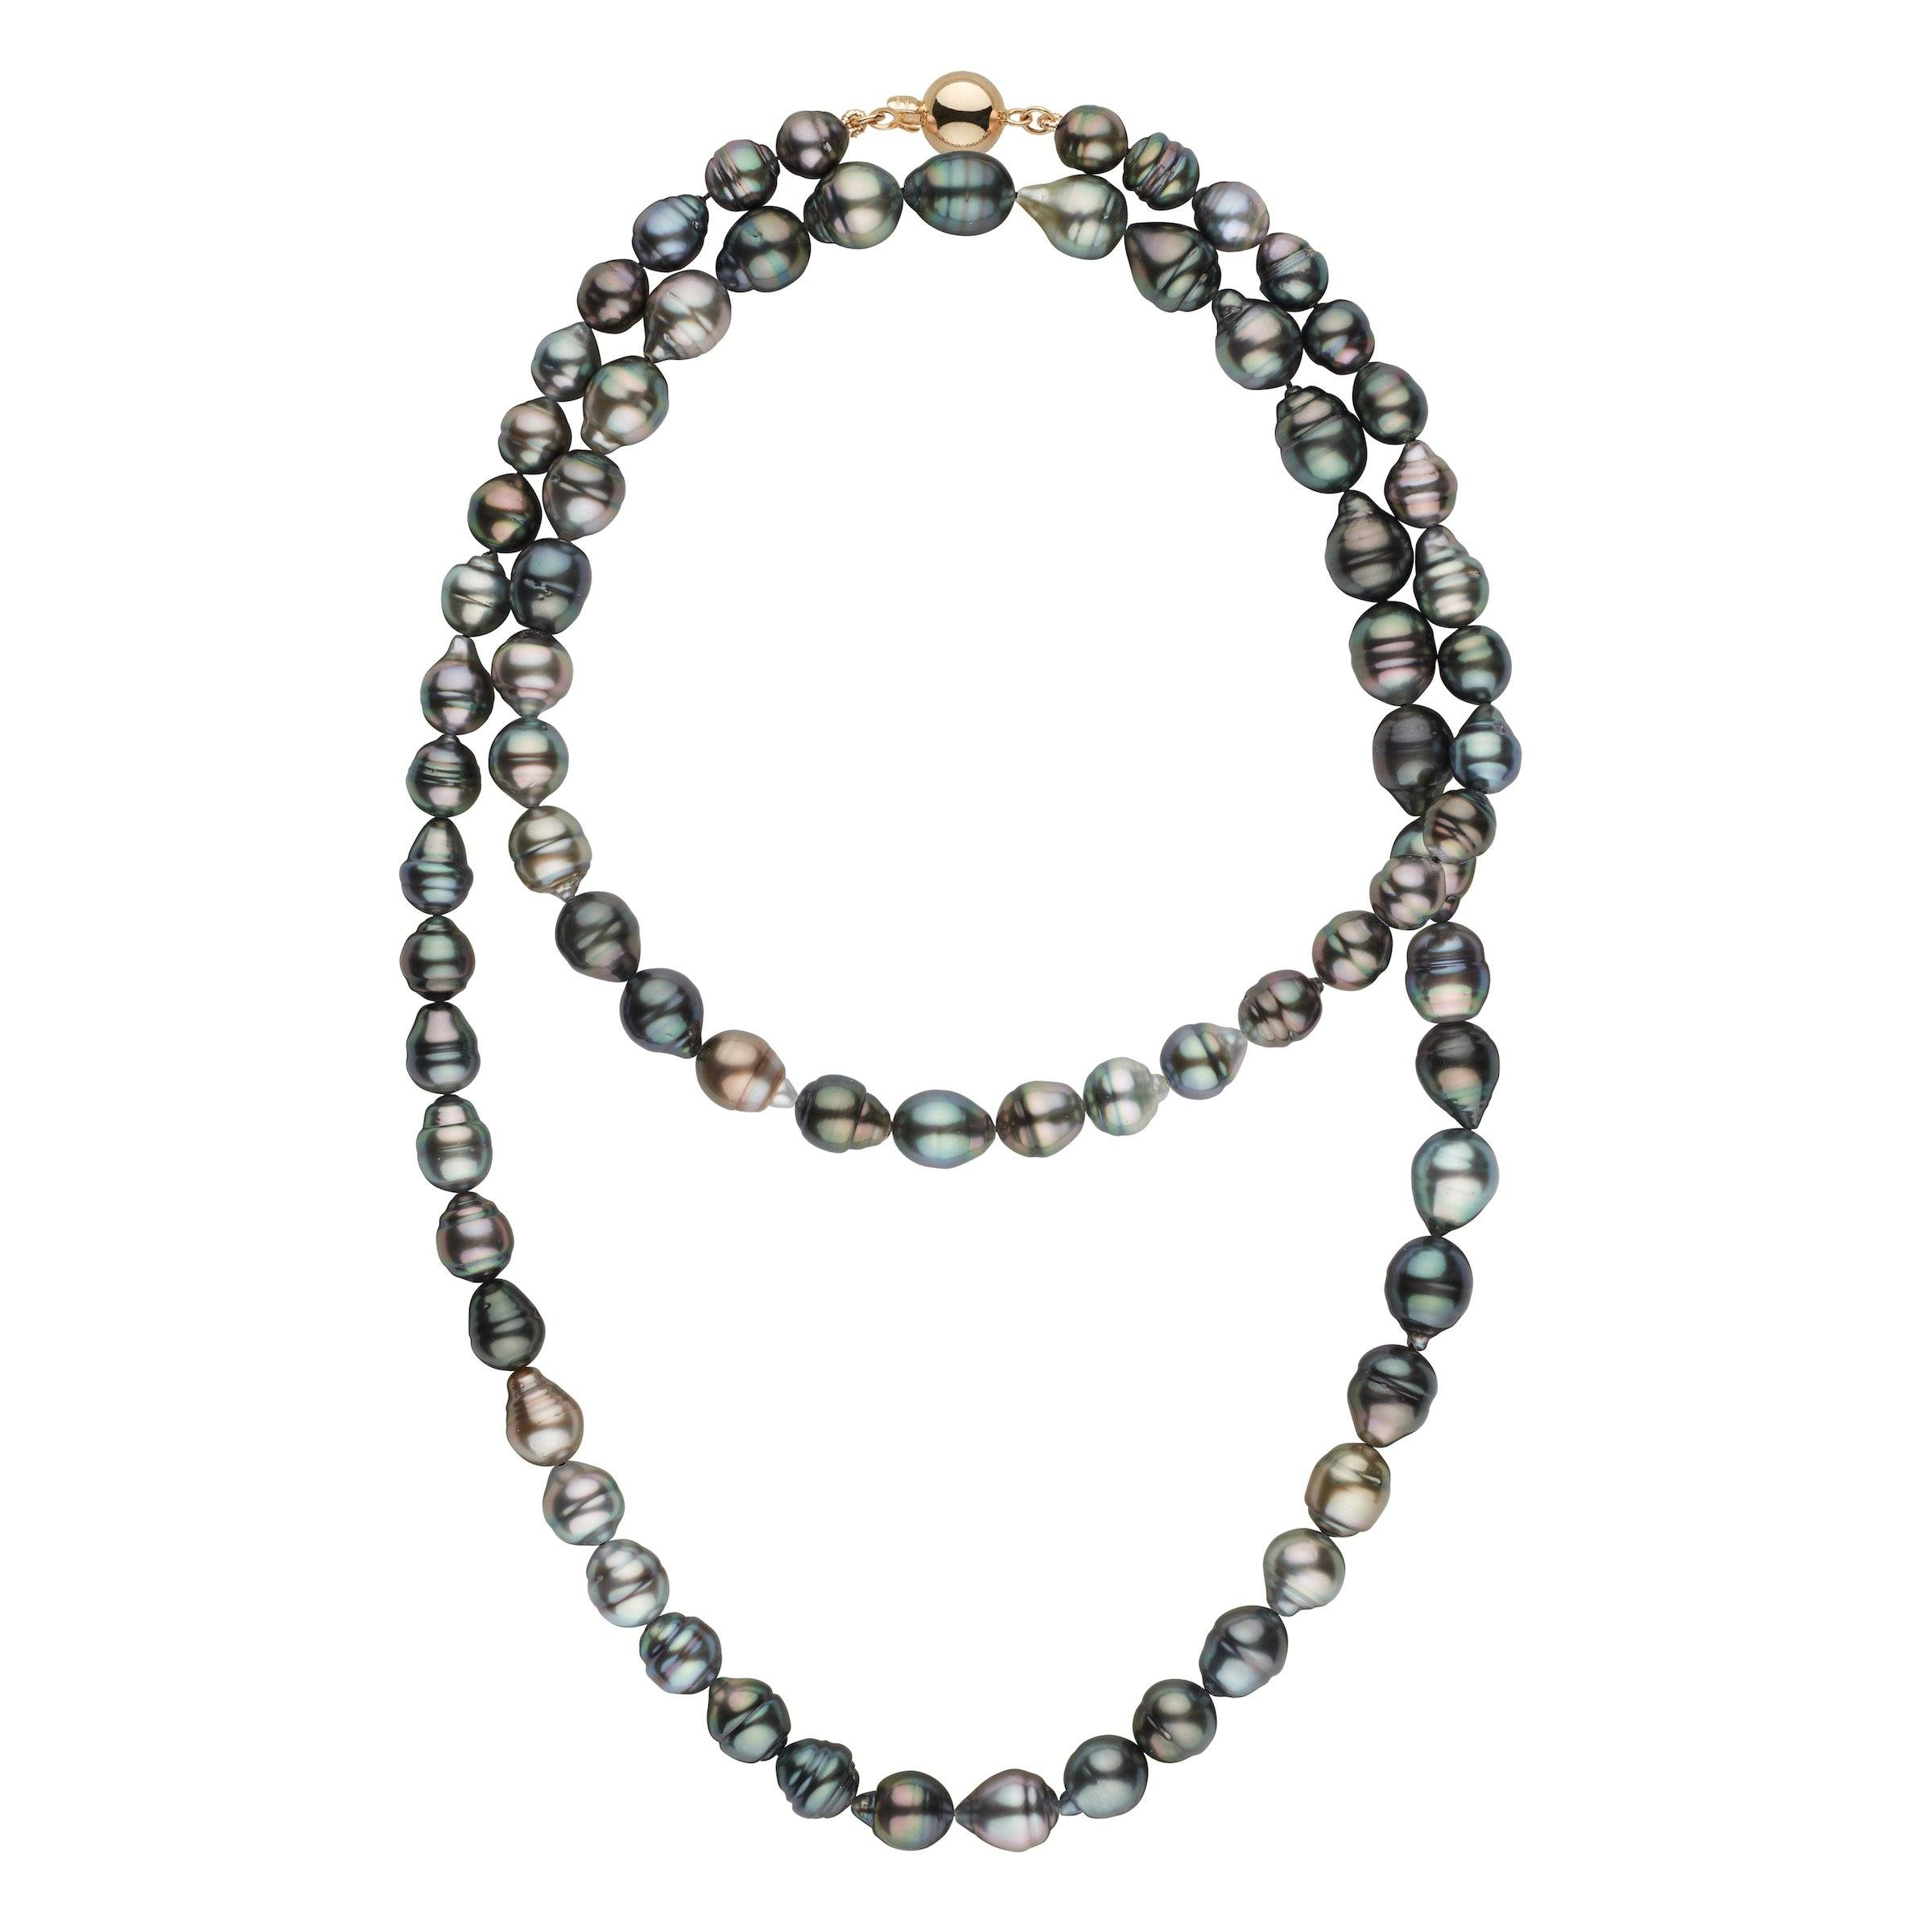 8.1-10.5 mm AA+/AAA Tahitian Baroque Pearl Necklace - 35 Inches